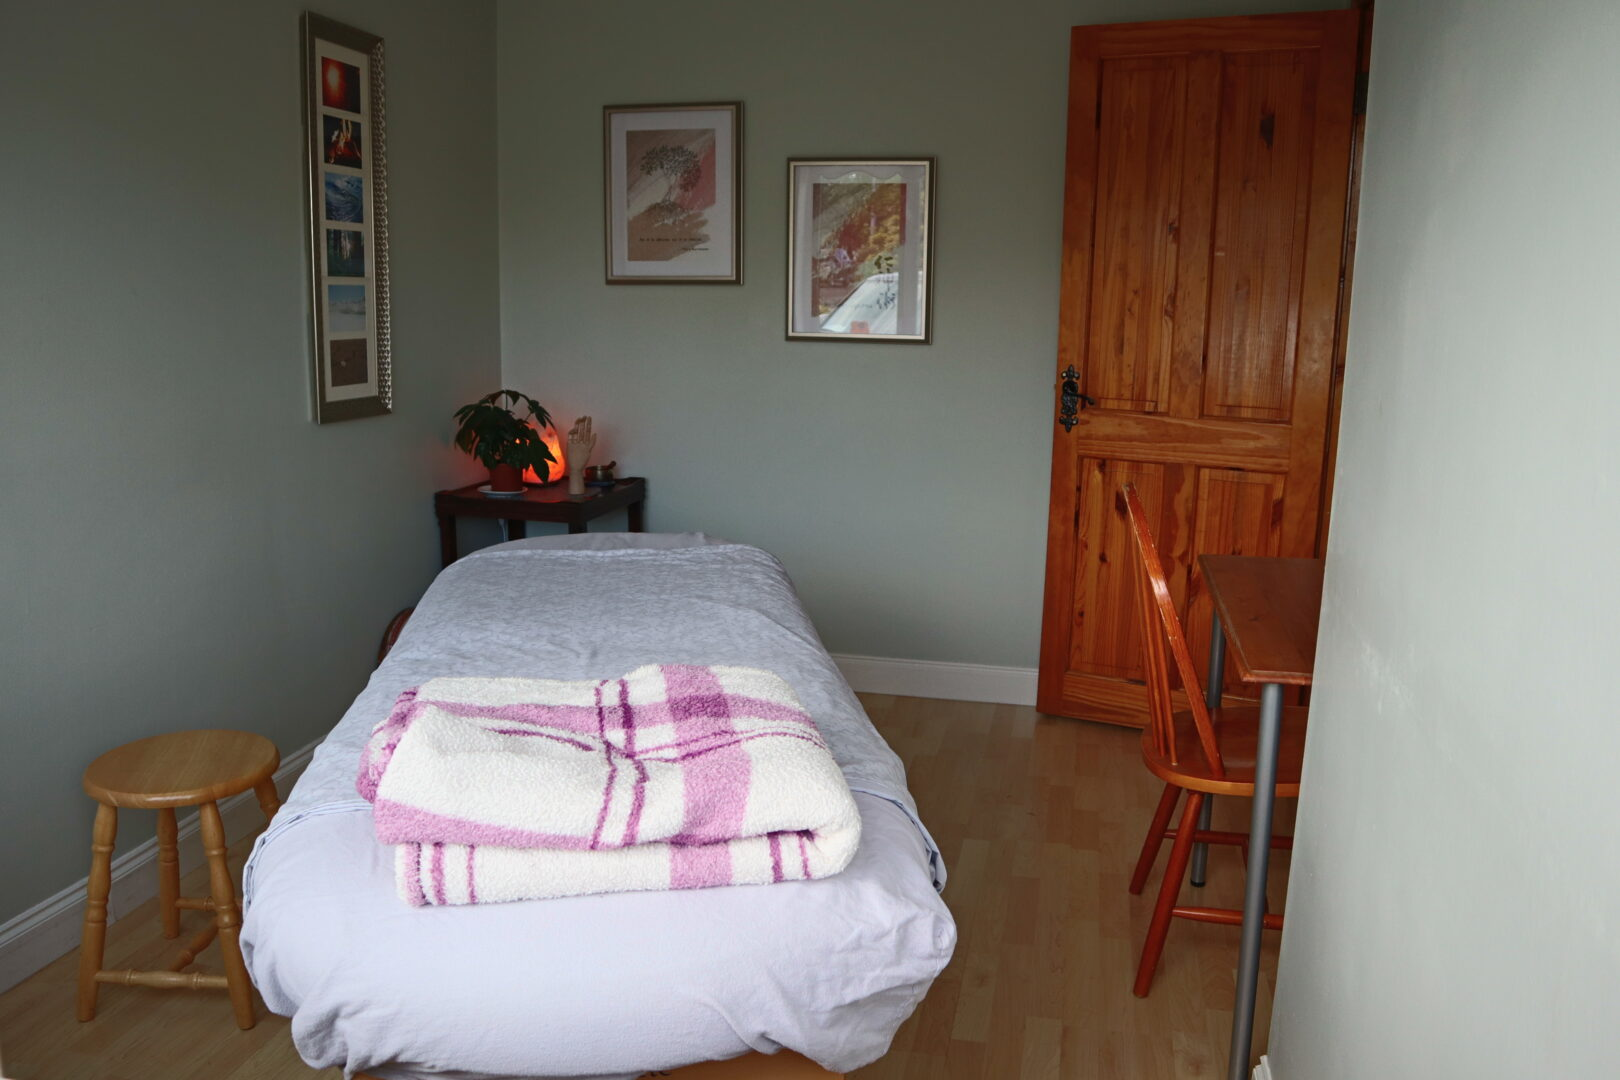 Treatment room in Maynooth